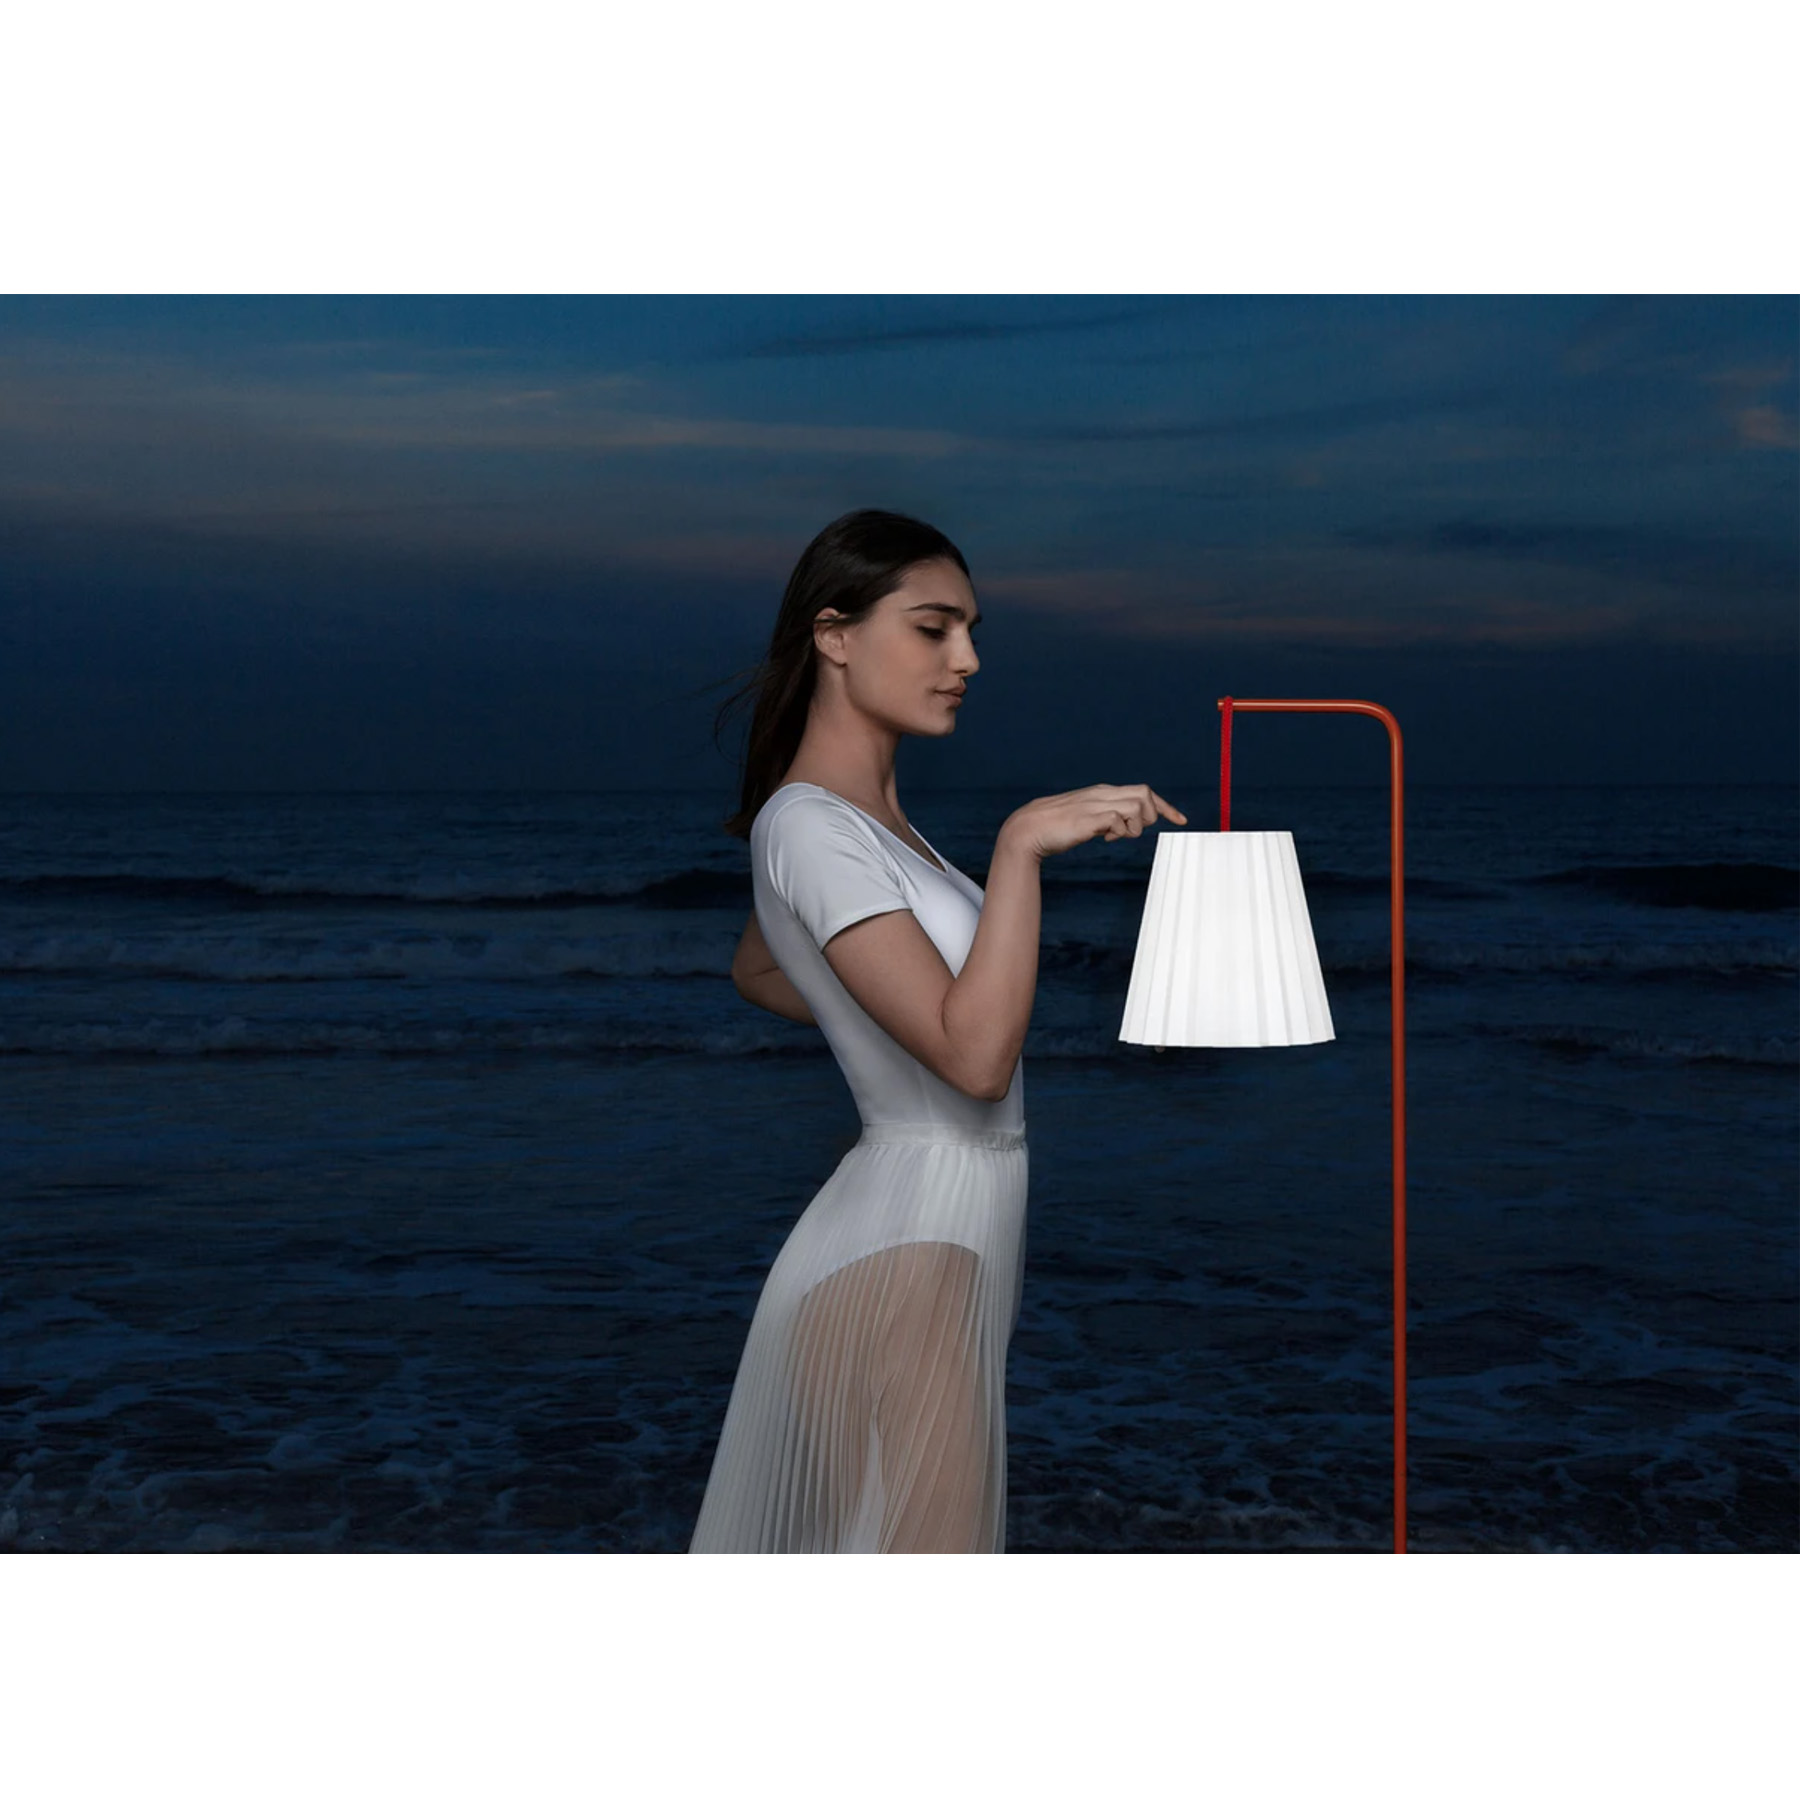 Plisy Portable Lamp with Stand - The Plisy nautical cord handle is available in several colours and can be used to move the lamp from place to place like a lantern or on the wrist. Charge it up at home and take it to the park, to the beach or for a night walk. This lamp is perfect if you do not have light sources in your outdoor area. Use the handle to hang it as a wall lamp or place it on its base as a floor light. Plisy is intended as a portable outdoor lamp, but you can also use it indoors. Use its base to set it near a dining table or reading corner, a hallway area or by the entrance to the house. Use it as an auxiliary table lamp inside the house, when you need to light up your outdoor area or take it with you to a night outing. The lamp base is available as a separate product in thermo-lacquered metal white or red. Please enquire us for further information.  7h Charge/10 h Light. | Matter of Stuff